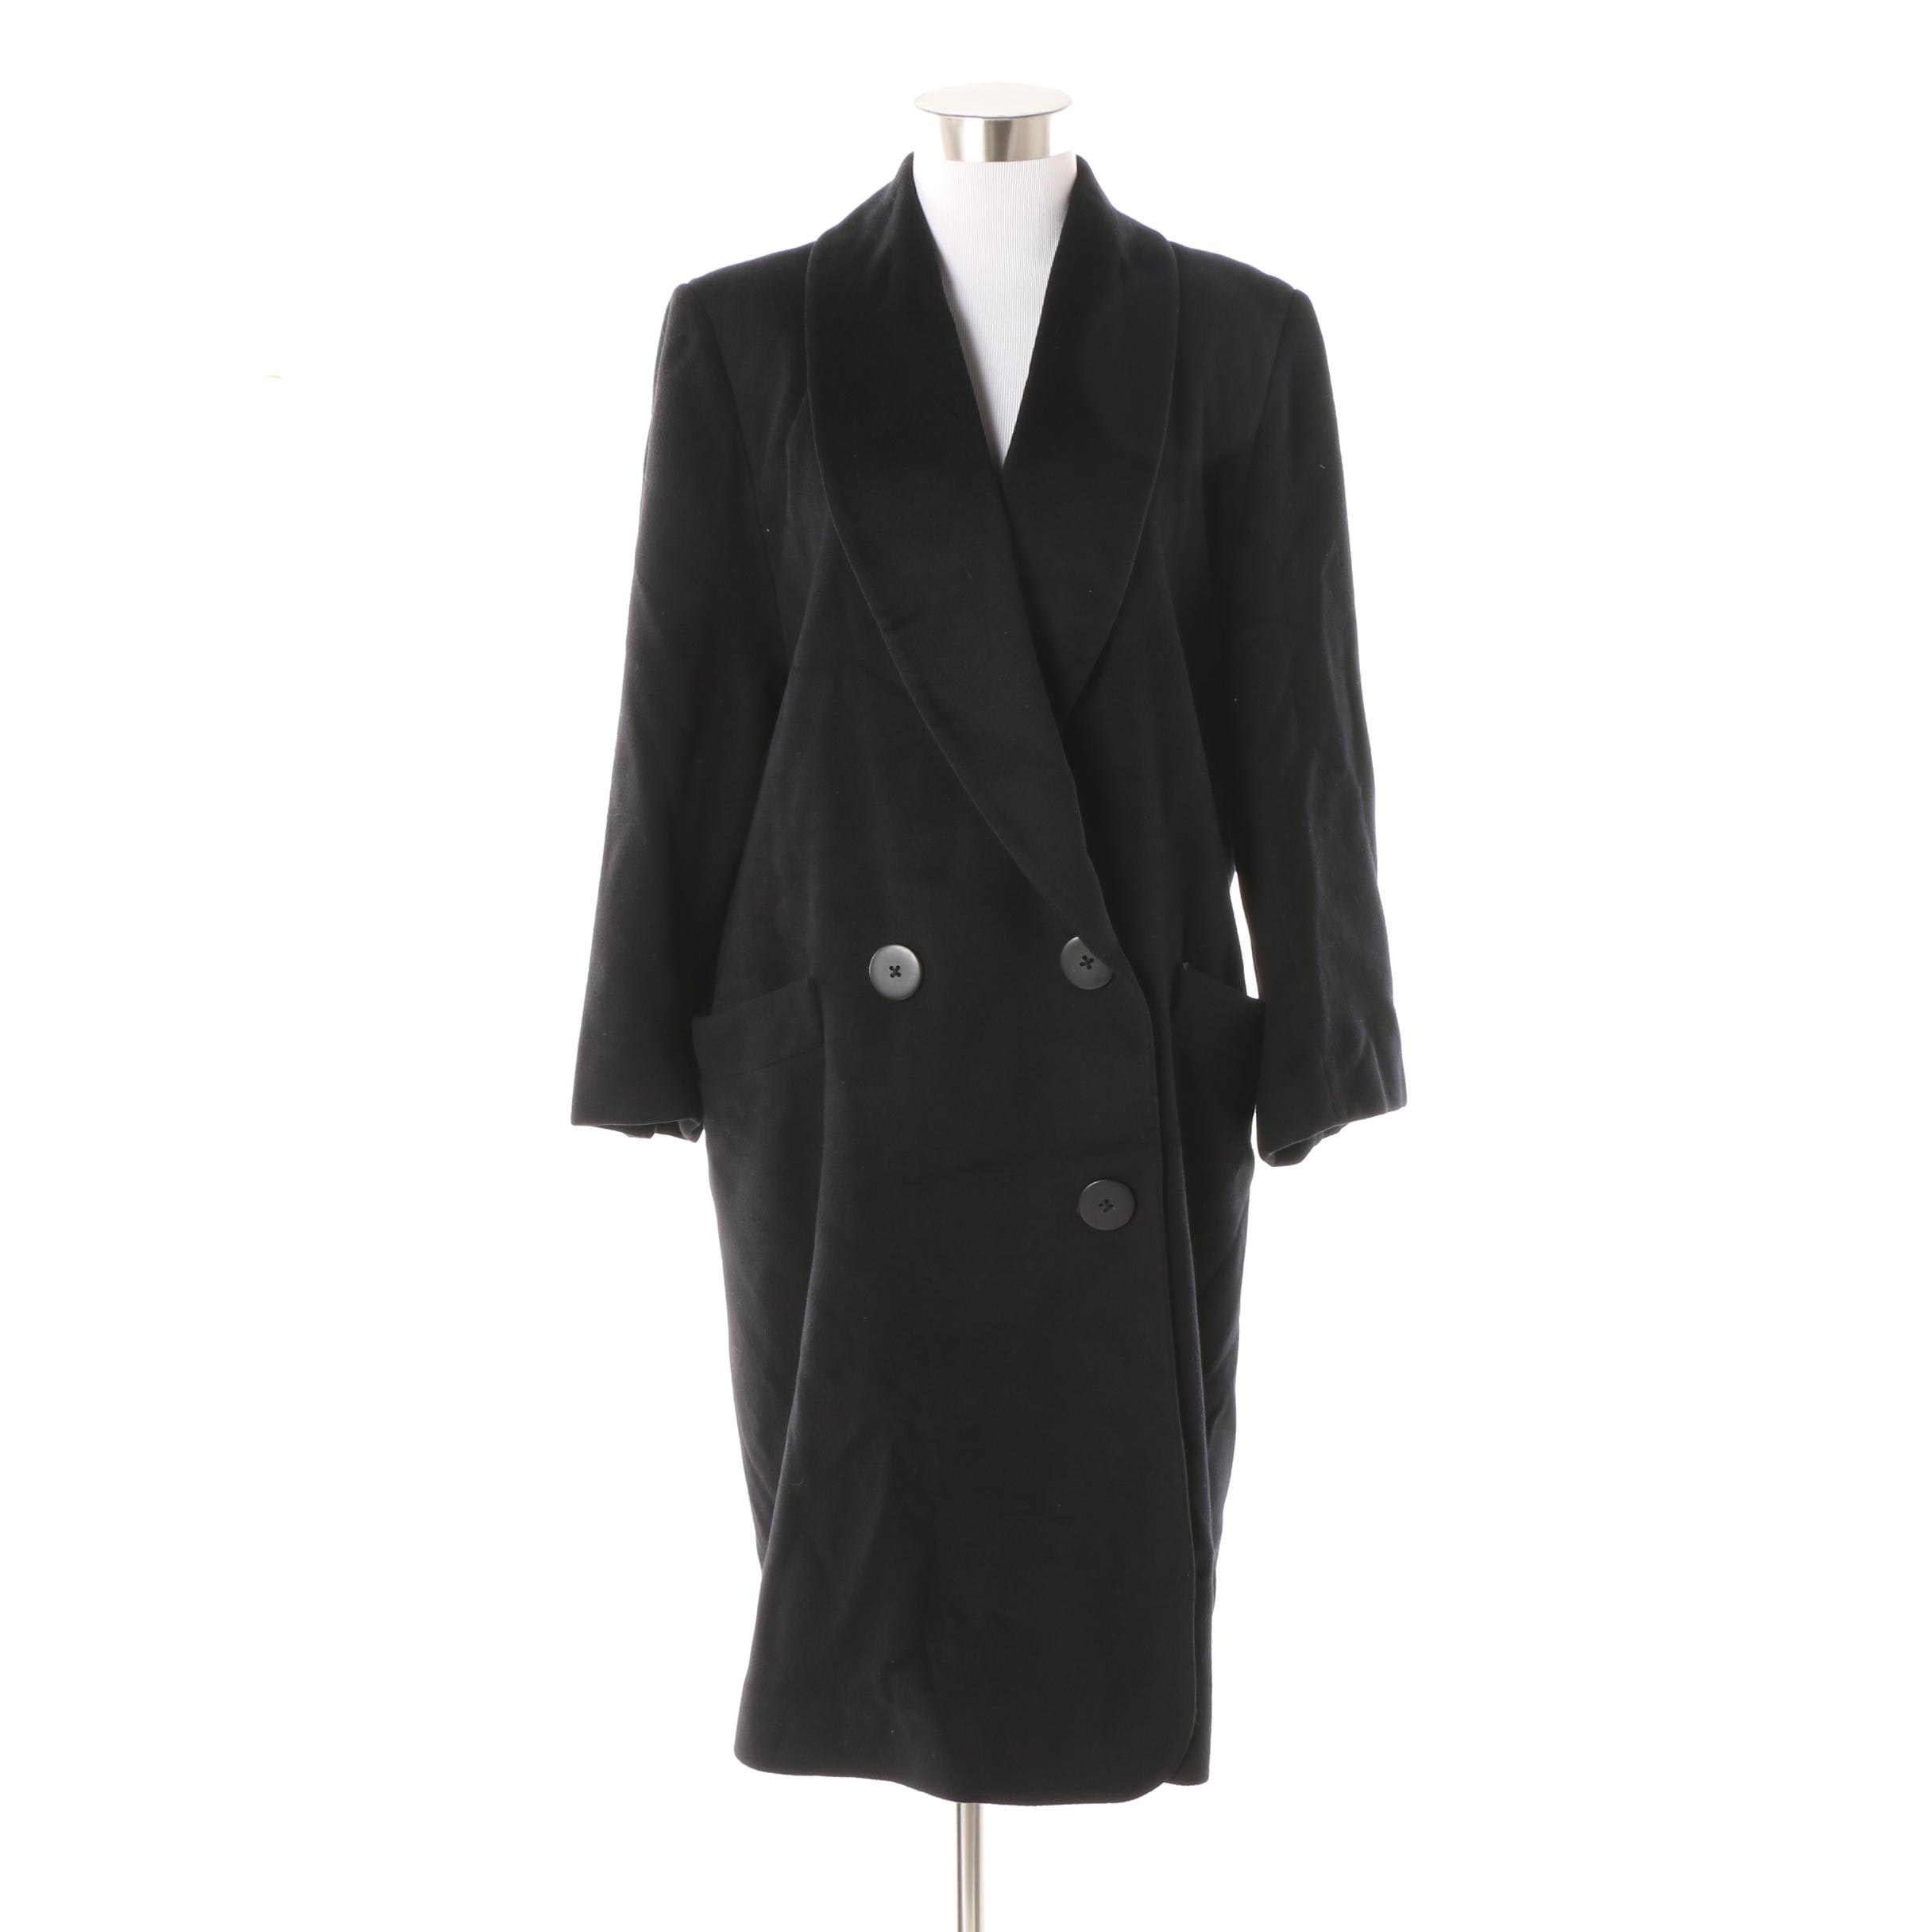 Women's Circa 1990s Christian Dior Black Cashmere Blend Coat